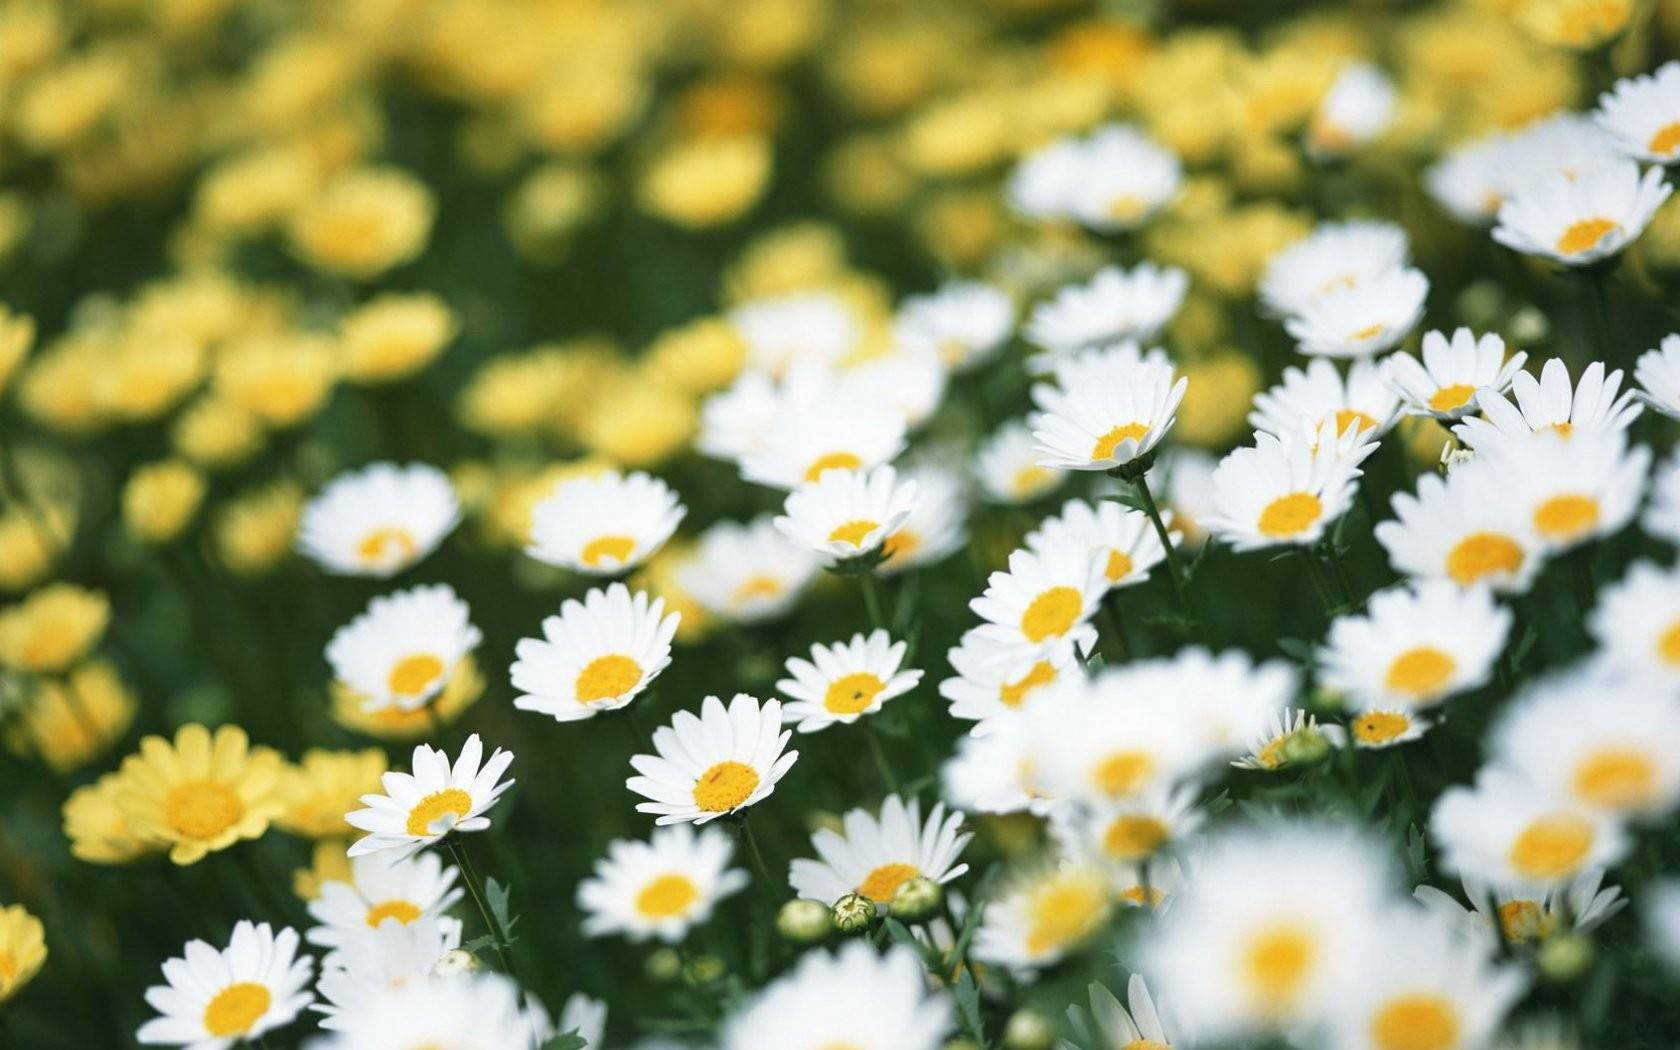 Meadow Daisy 1680×1050 Wallpaper 868328